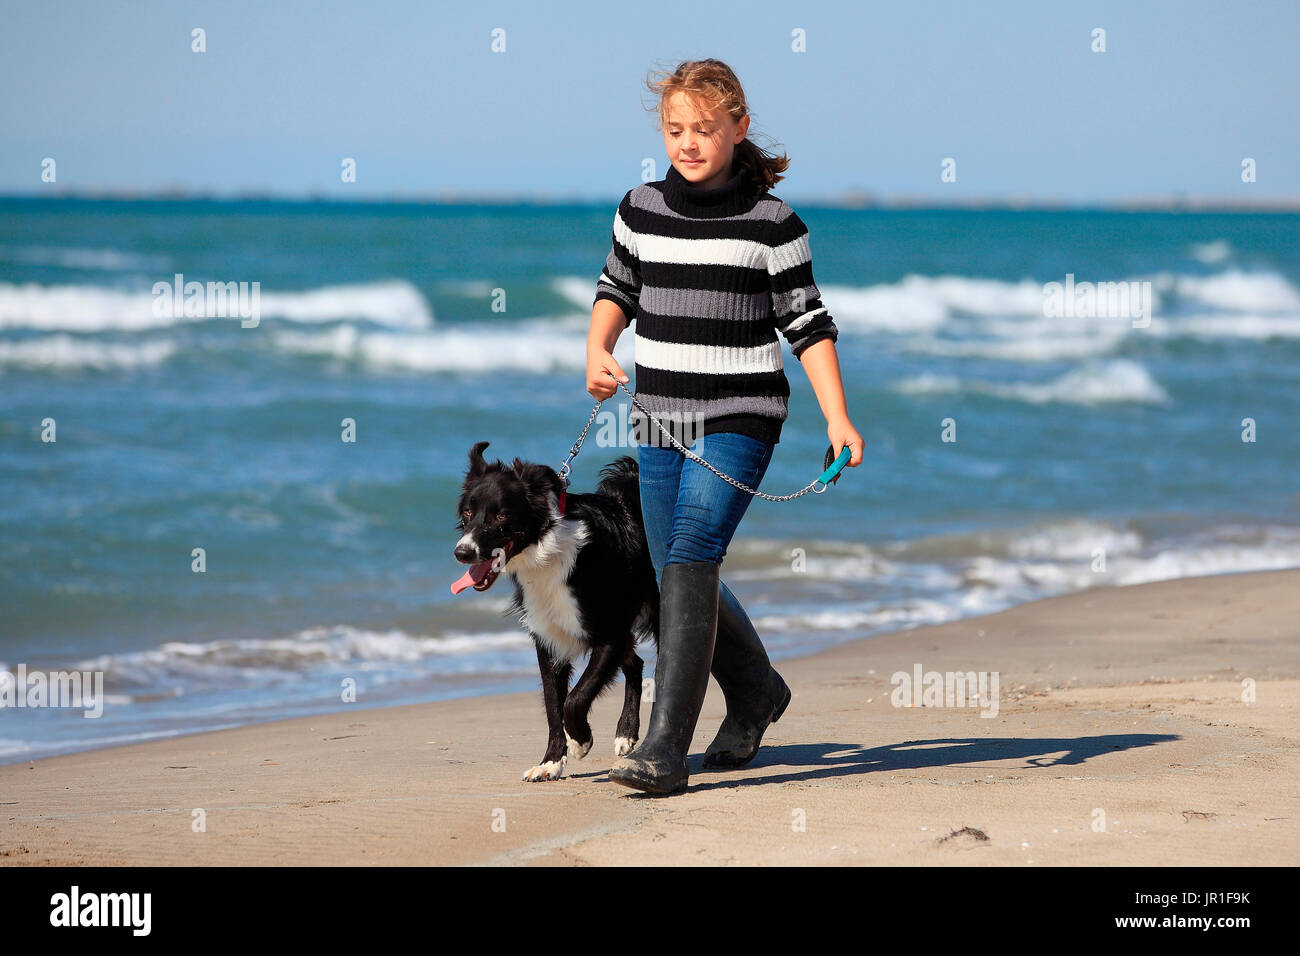 Girl playing with a Border Collie on a beach - Stock Image